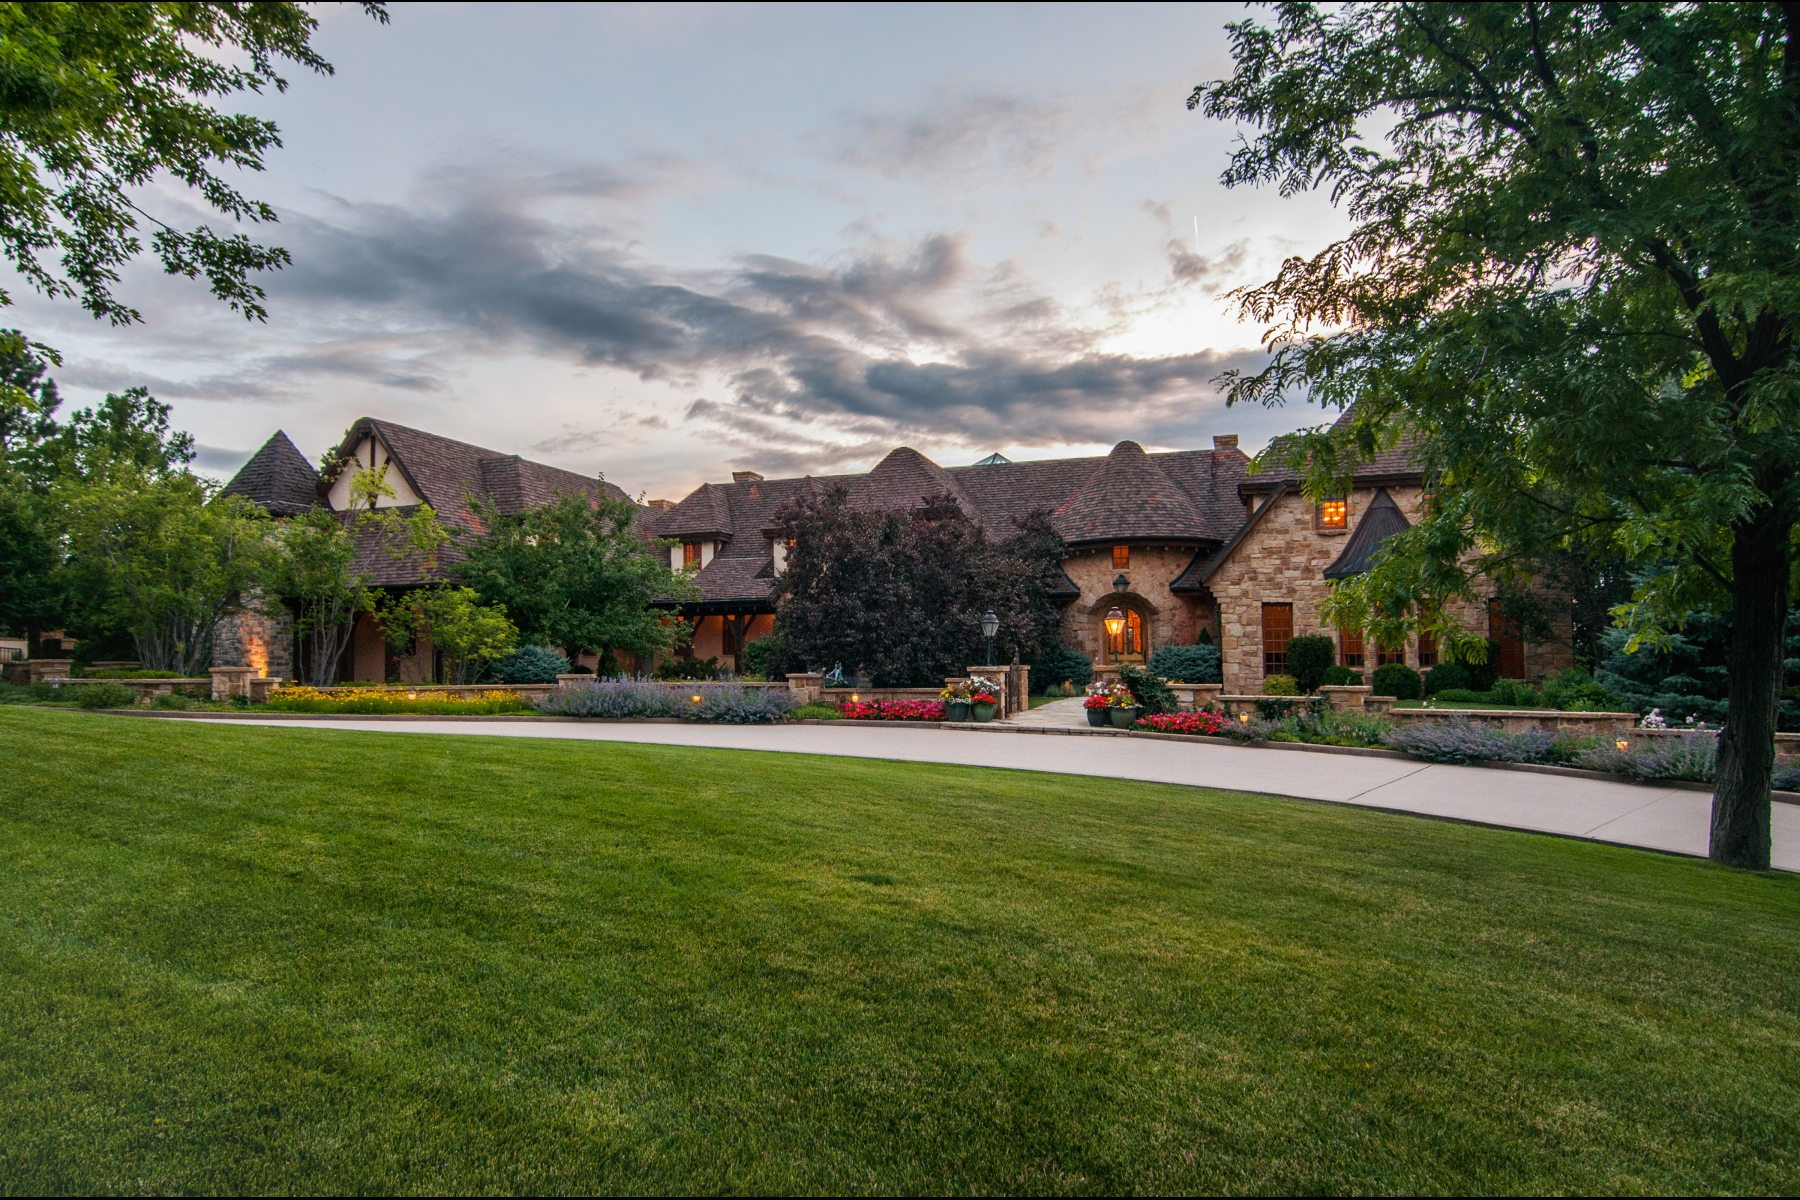 Property For Sale at Old World craftsmanship and timeless design in Cherry Hills Village